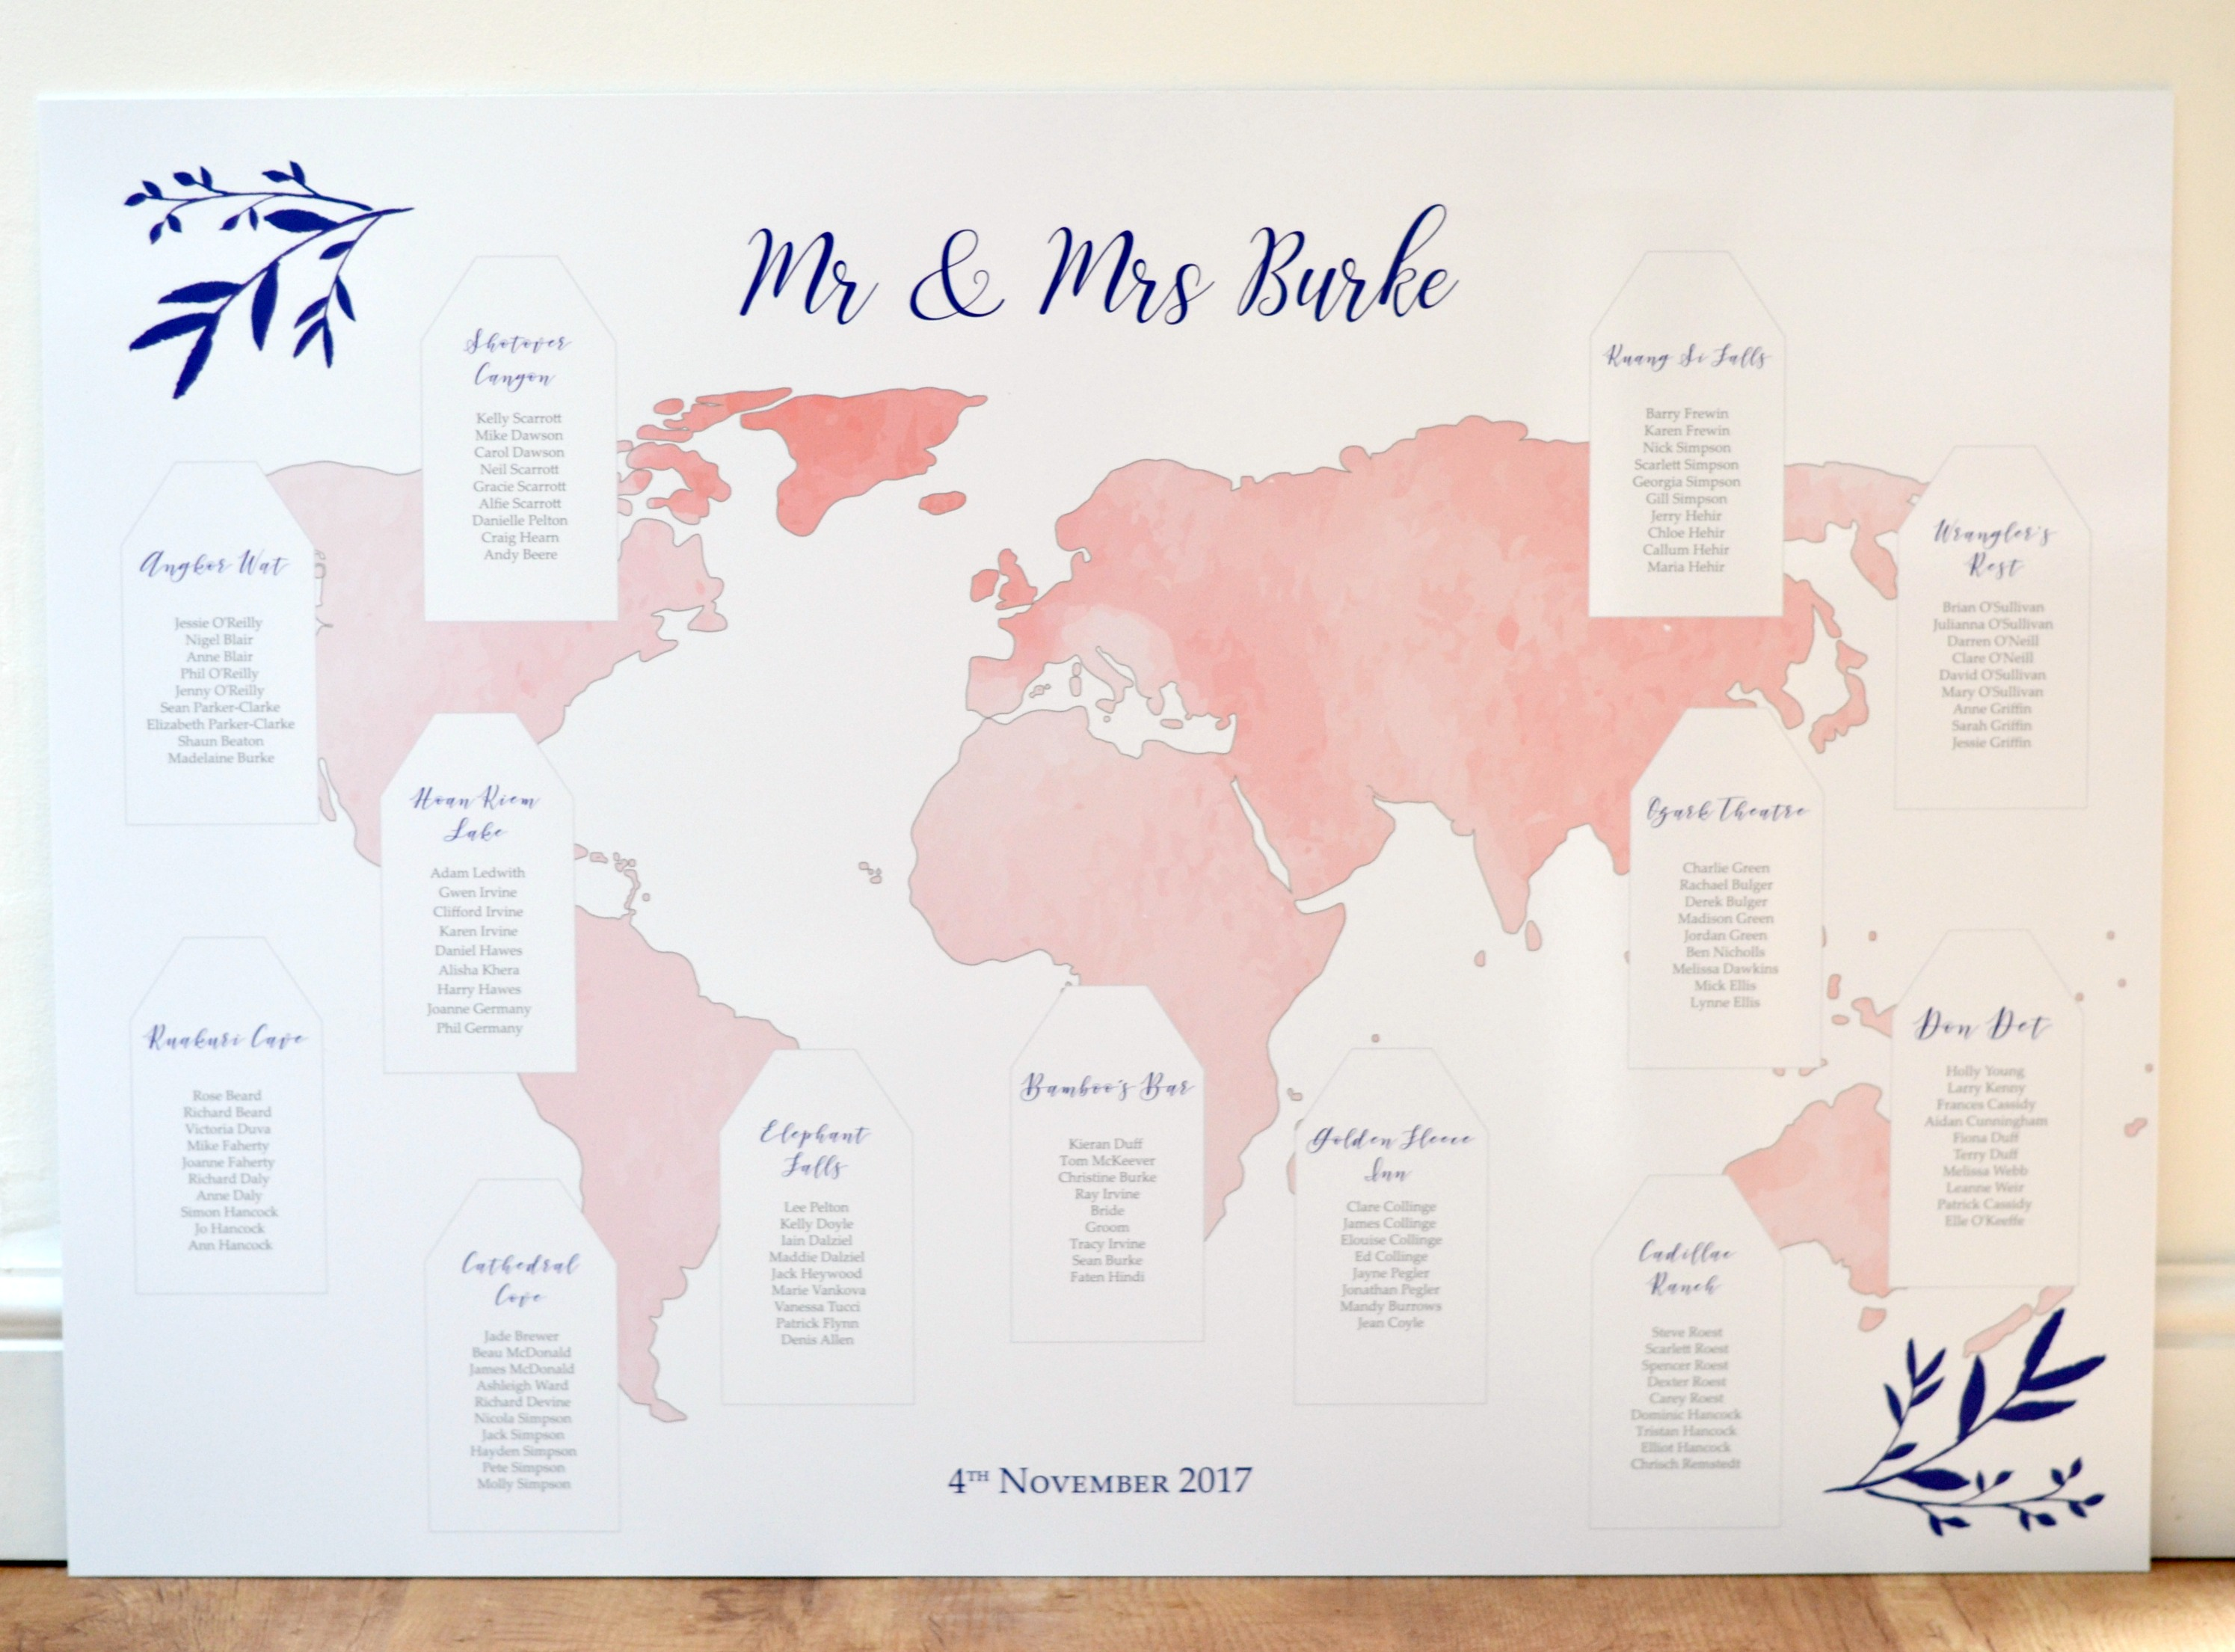 map of the united states with longitude and laude with World Map Poster Pink on Us Navy Map After New Madrid Earthquake as well World Map Laude And Longitude Map also World Map Poster Pink as well Anne Hathaway Young besides World Map With Laude And Longitude Printable Free.